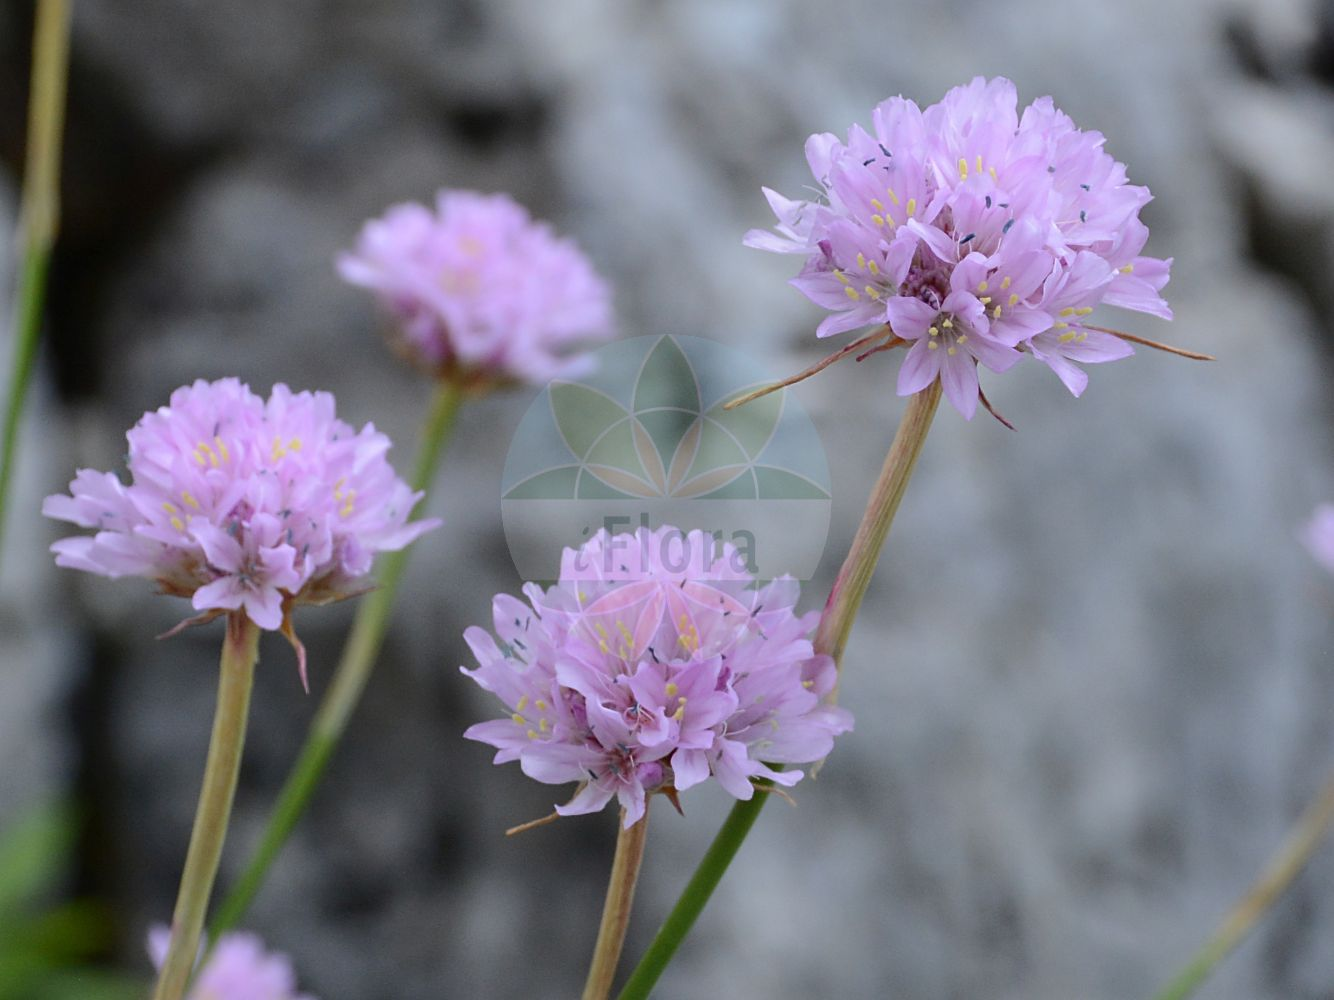 Foto von Scabiosa lucida (Glaenzende Skabiose - Glossy Scabious). Das Foto wurde in La Rambertina, Waadt, Schweiz aufgenommen. ---- Photo of Scabiosa lucida (Glaenzende Skabiose - Glossy Scabious).The picture was taken in La Rambertina, Vaud, Switzerland.(Scabiosa lucida,Glaenzende Skabiose,Glossy Scabious,Scabiosa opaca,Scabiosa pubescens,Shining Scabious,Scabiosa,Skabiose,Scabious,Caprifoliaceae,Geissblattgewaechse,Honeysuckle family)